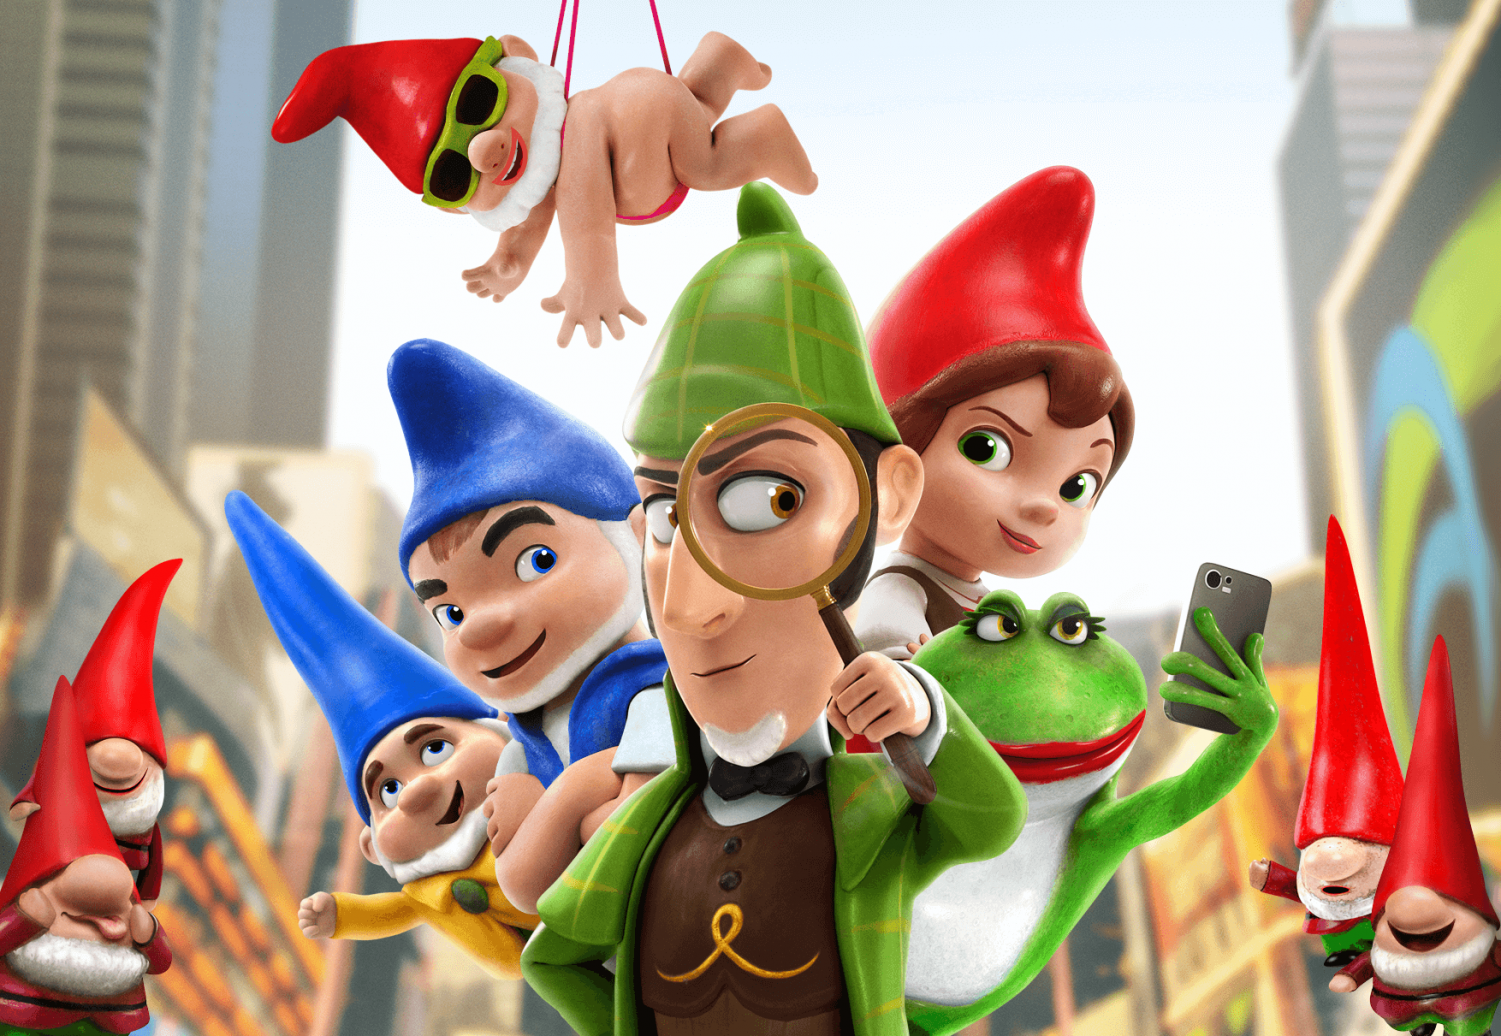 No one expected Sherlock Gnomes to be good. And it was no surprise when critics, even KE's own Brenden Lempe, attacked it and then forgot it.